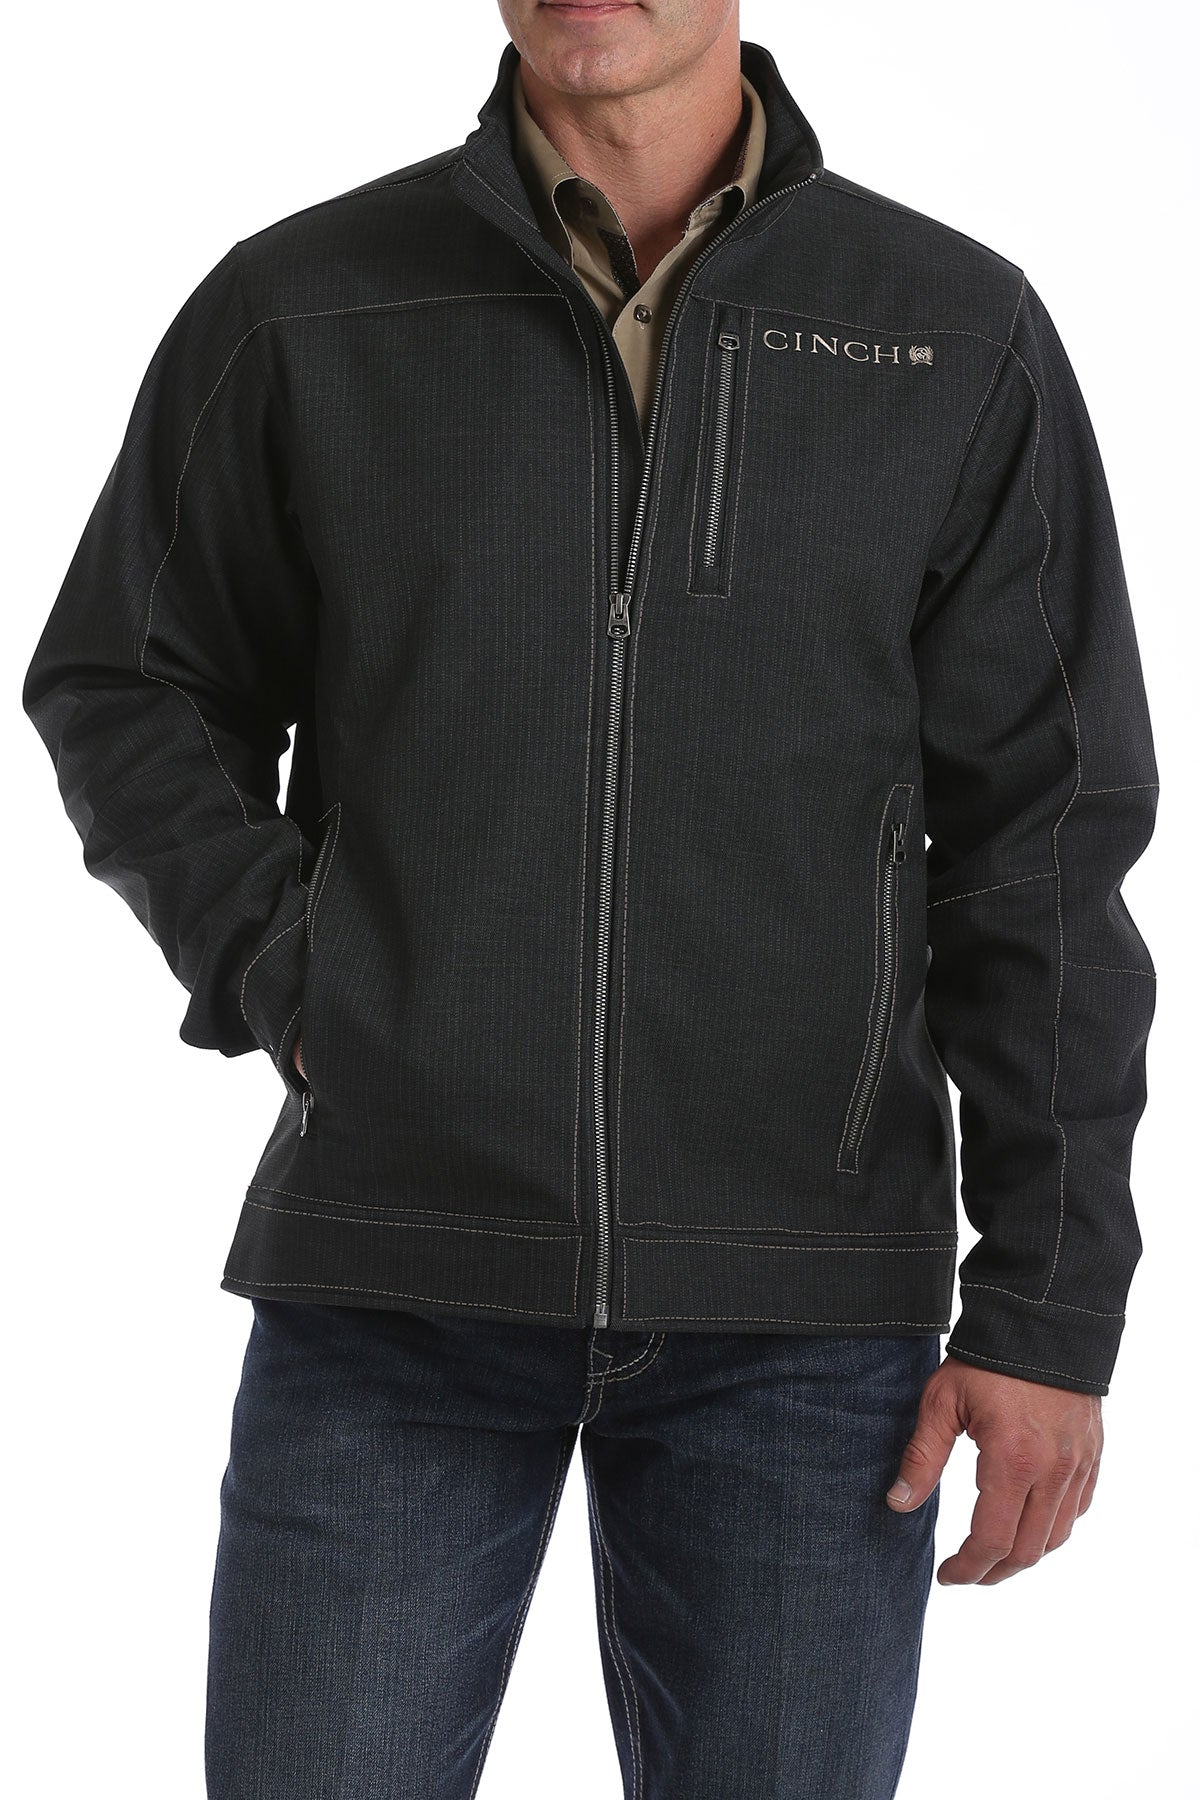 'Cinch' MWJ1086003 - Bonded Waffle Fleece Lined Jacket - Charcoal